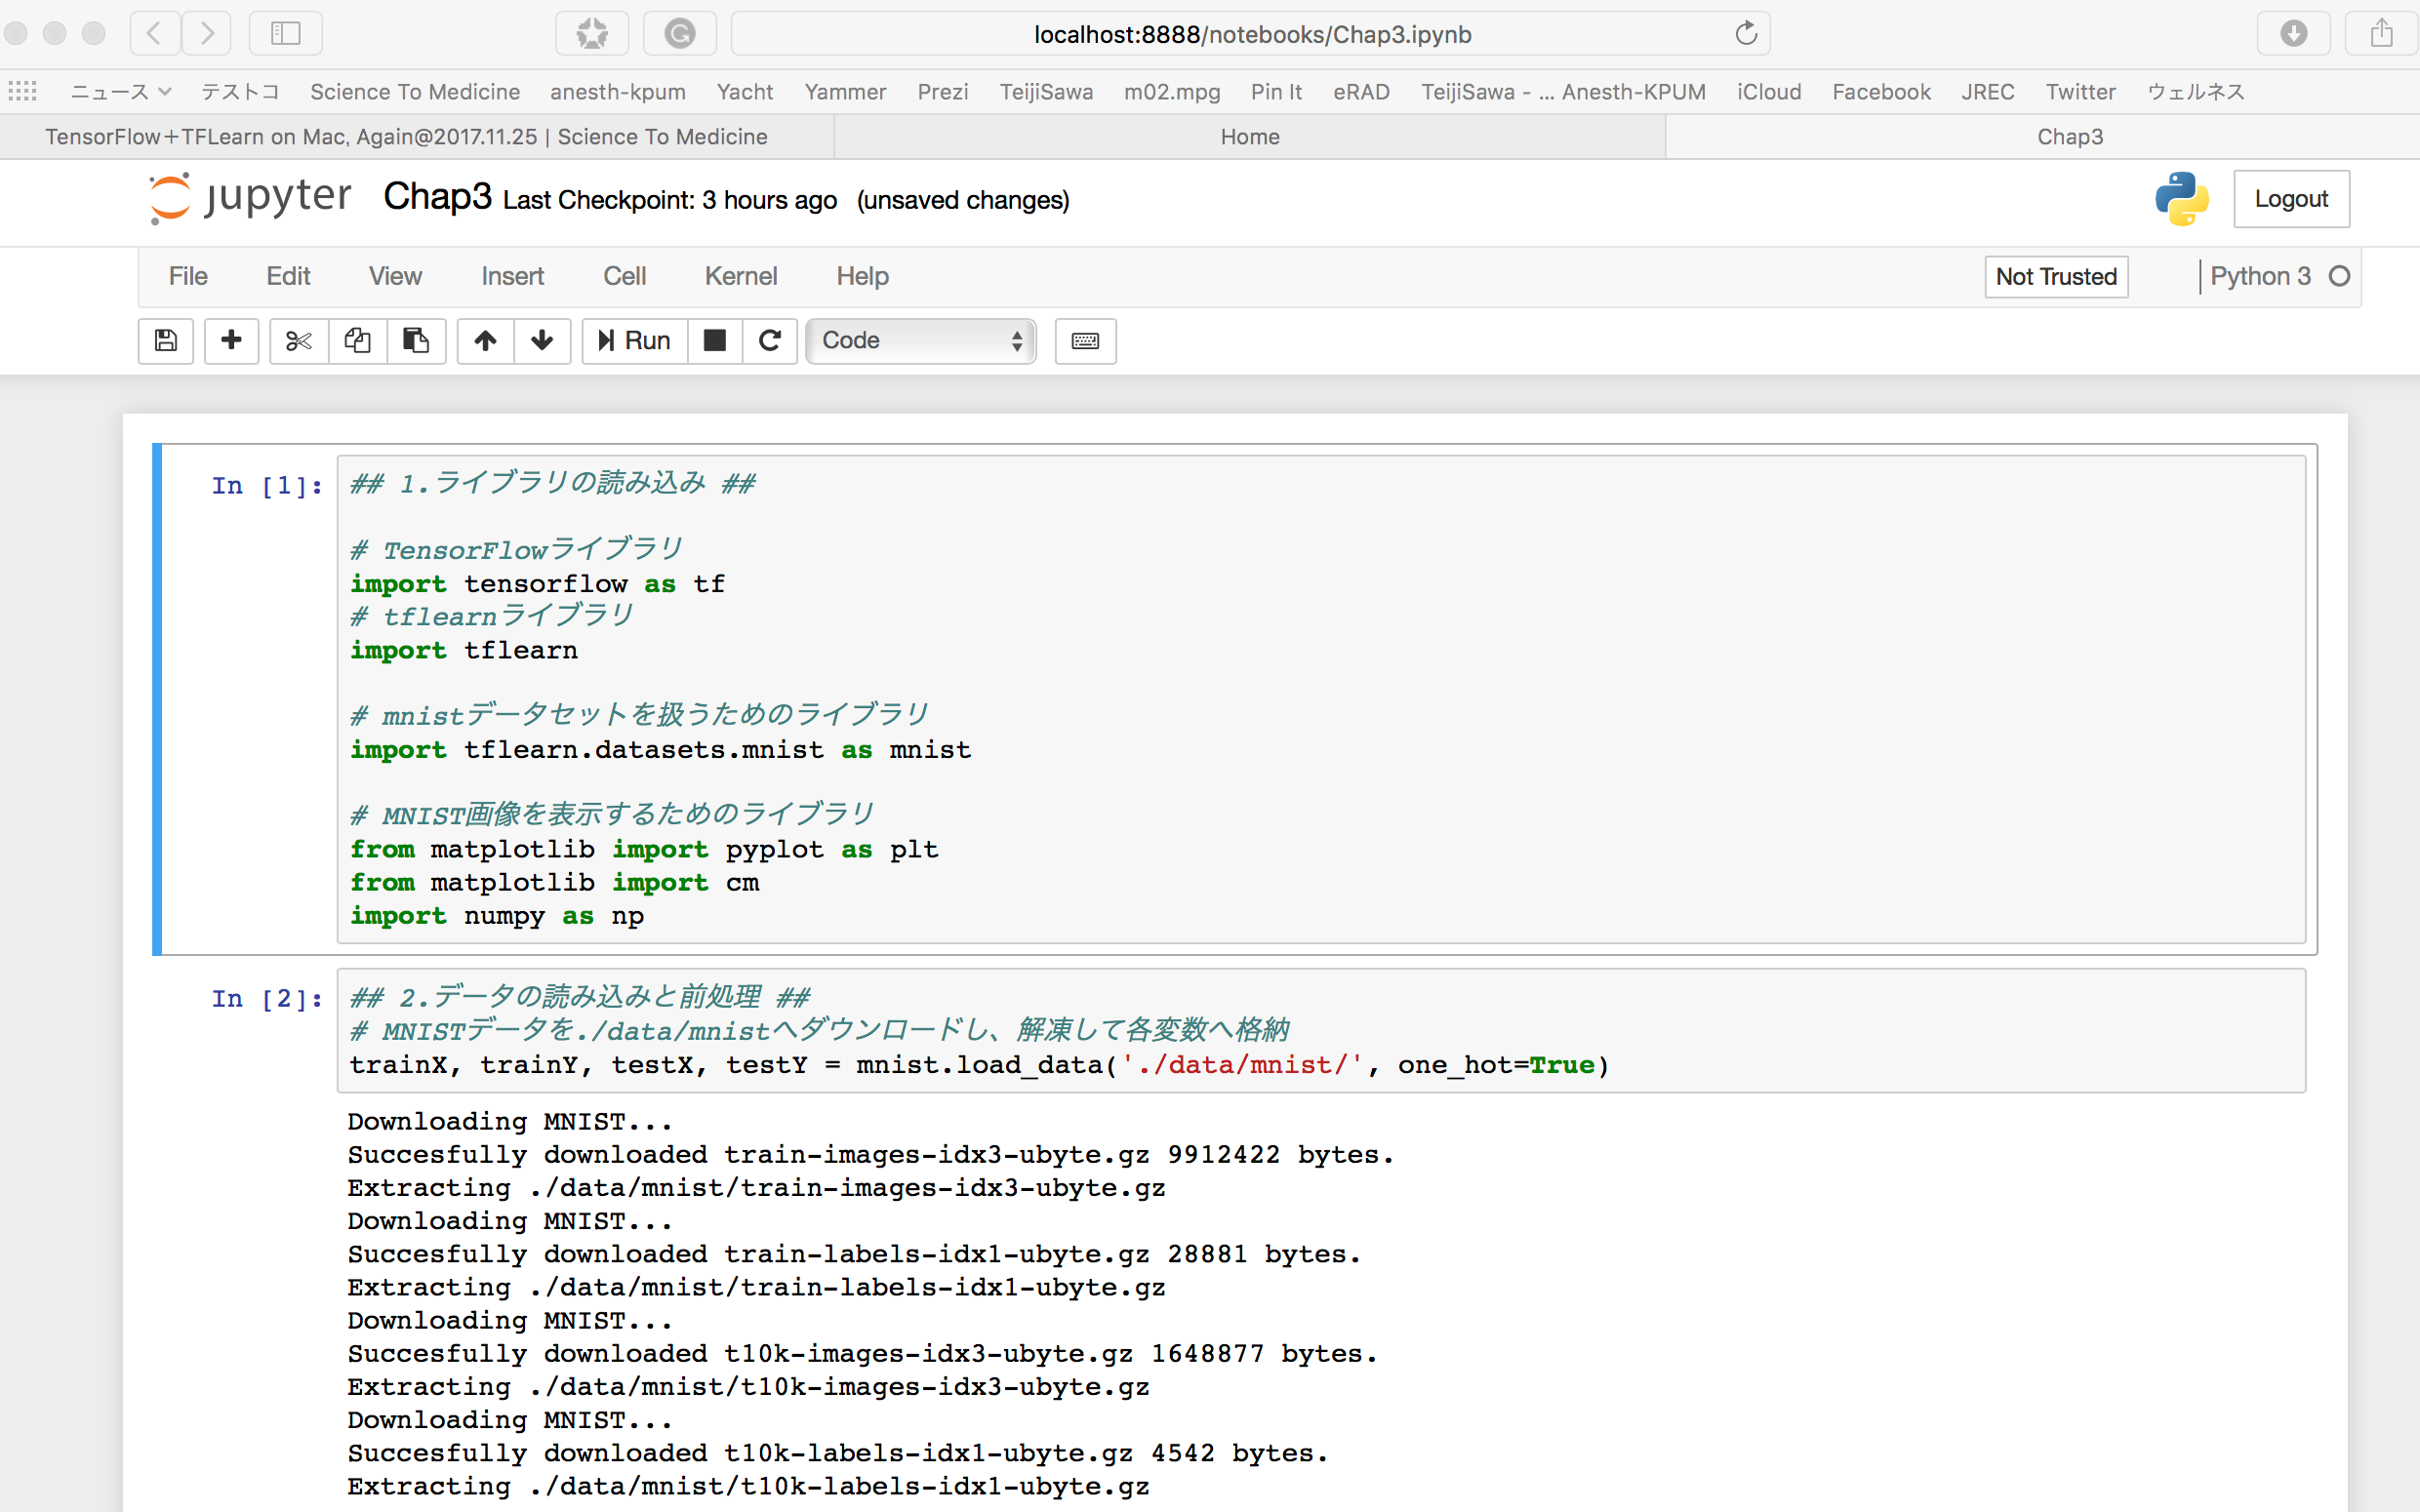 TensorFlow+TFLearn > Jupyter Notebook on Mac OS X with